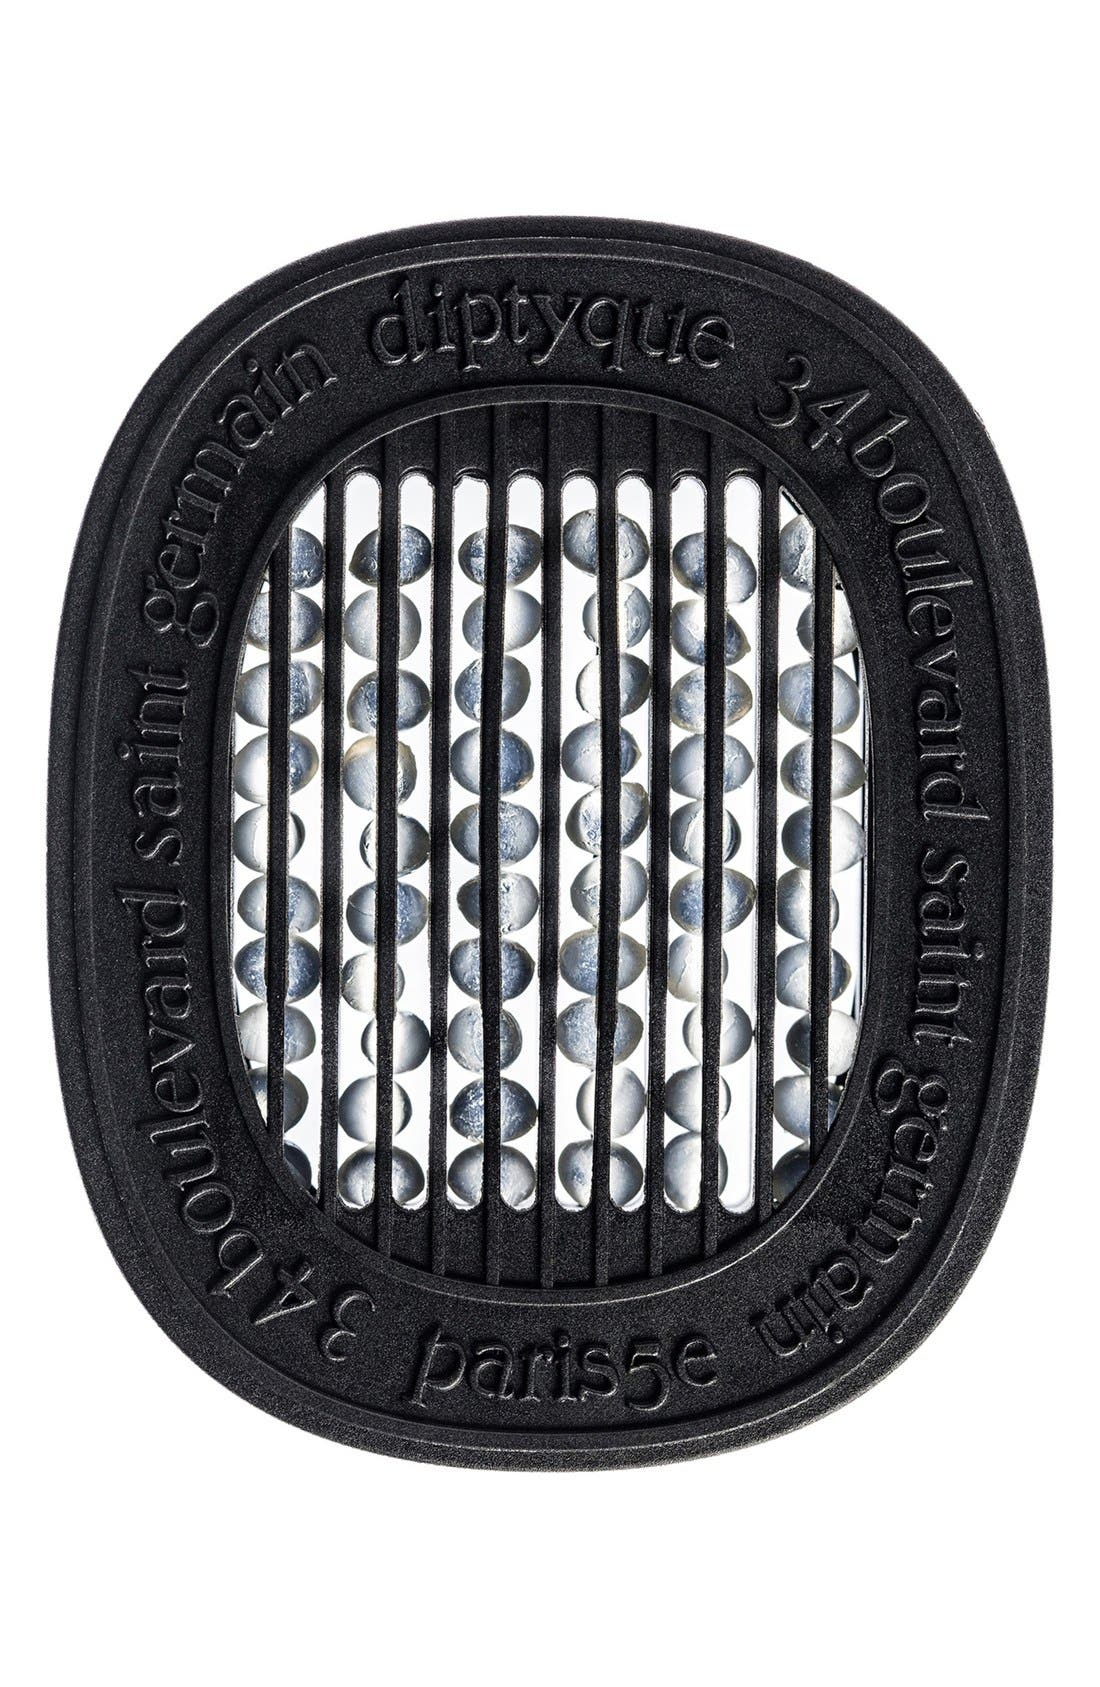 diptyque 'Orange Blossom' Electric Diffuser Cartridge